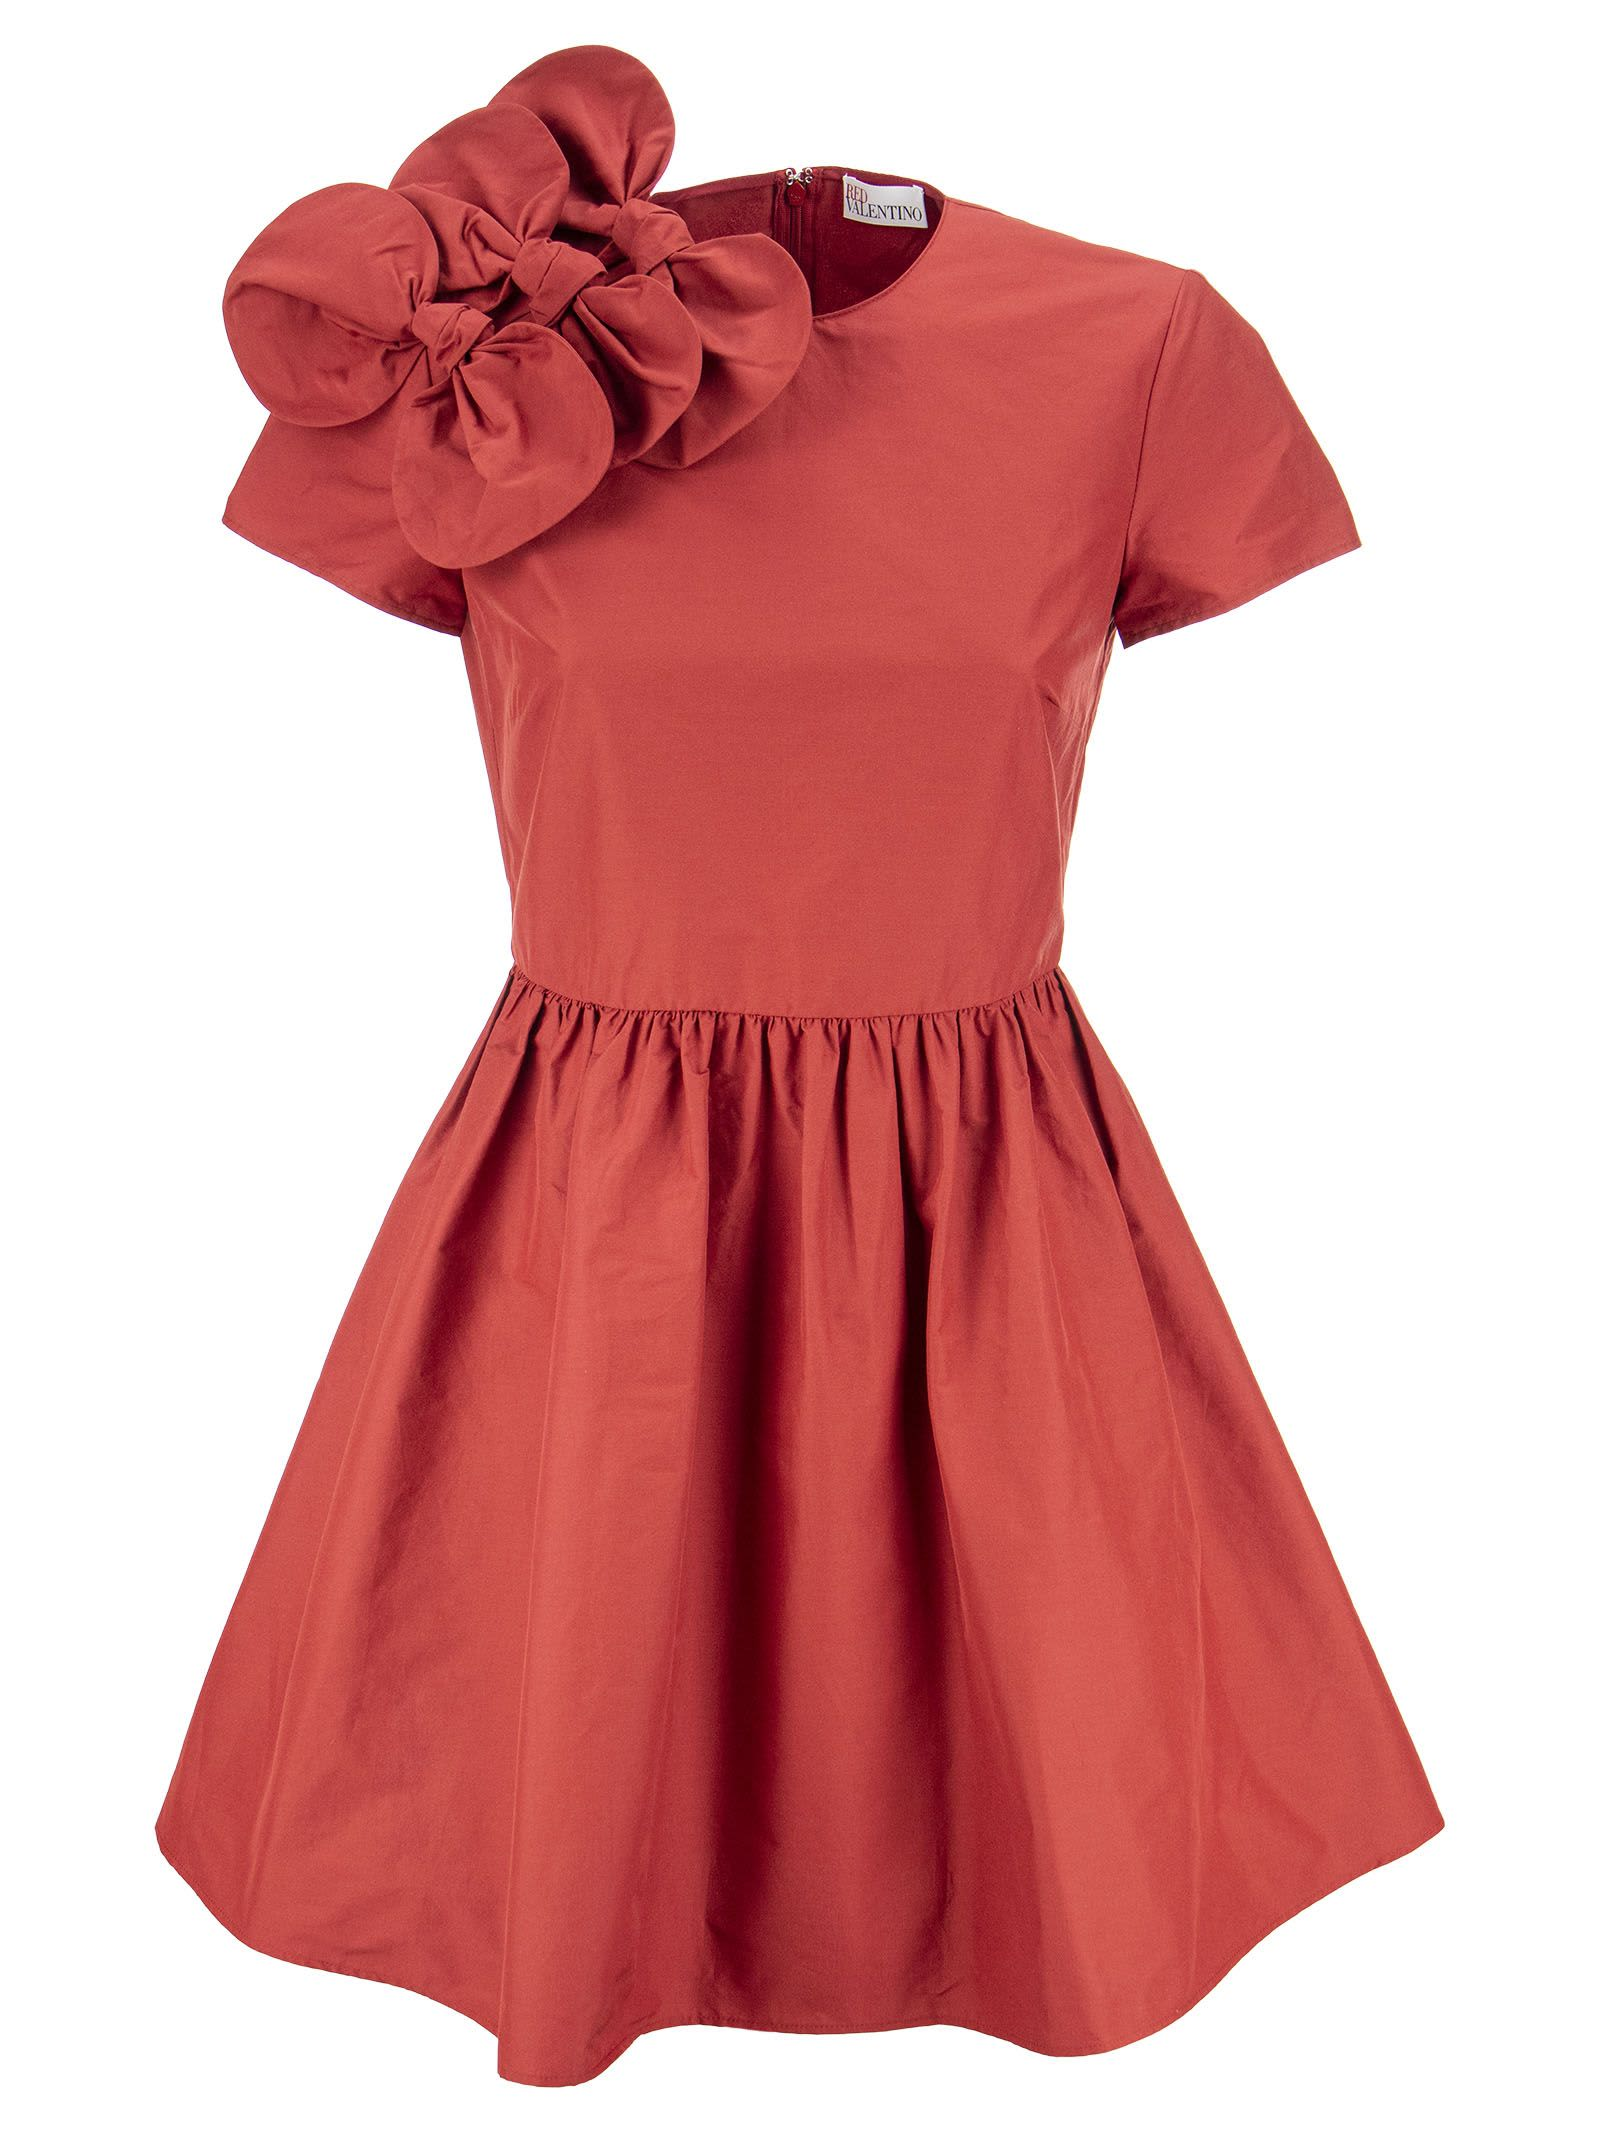 RED Valentino Cotton Taffeta Dress With Bow Detail